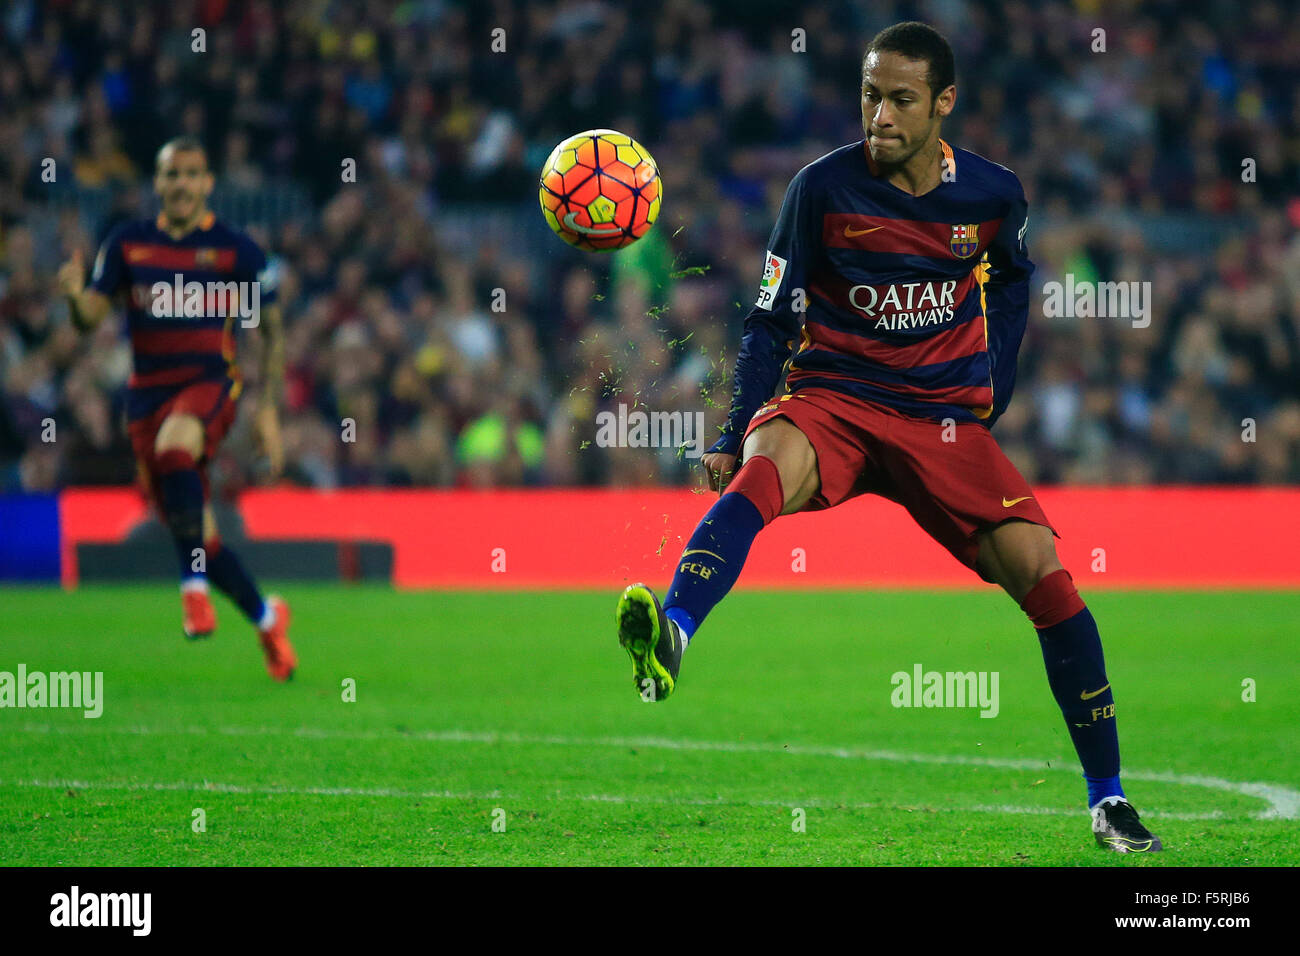 Barcelona, Spain. 8th Nov, 2015. Barcelona's Neymar controls the ball during the Spanish first division soccer - Stock Image